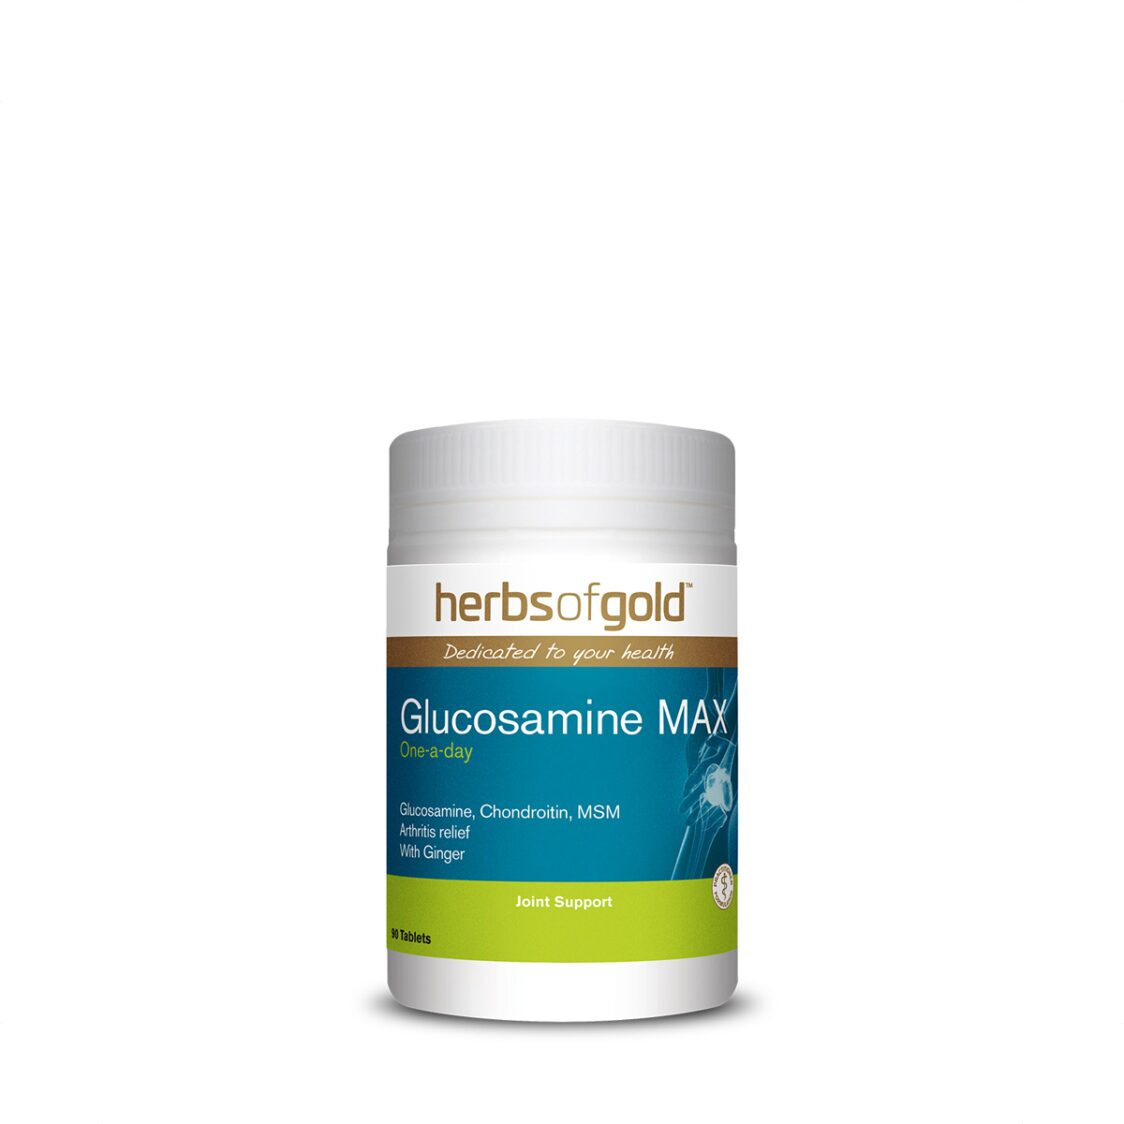 Herbs of Gold Glucosamine MAX 90 Tablets